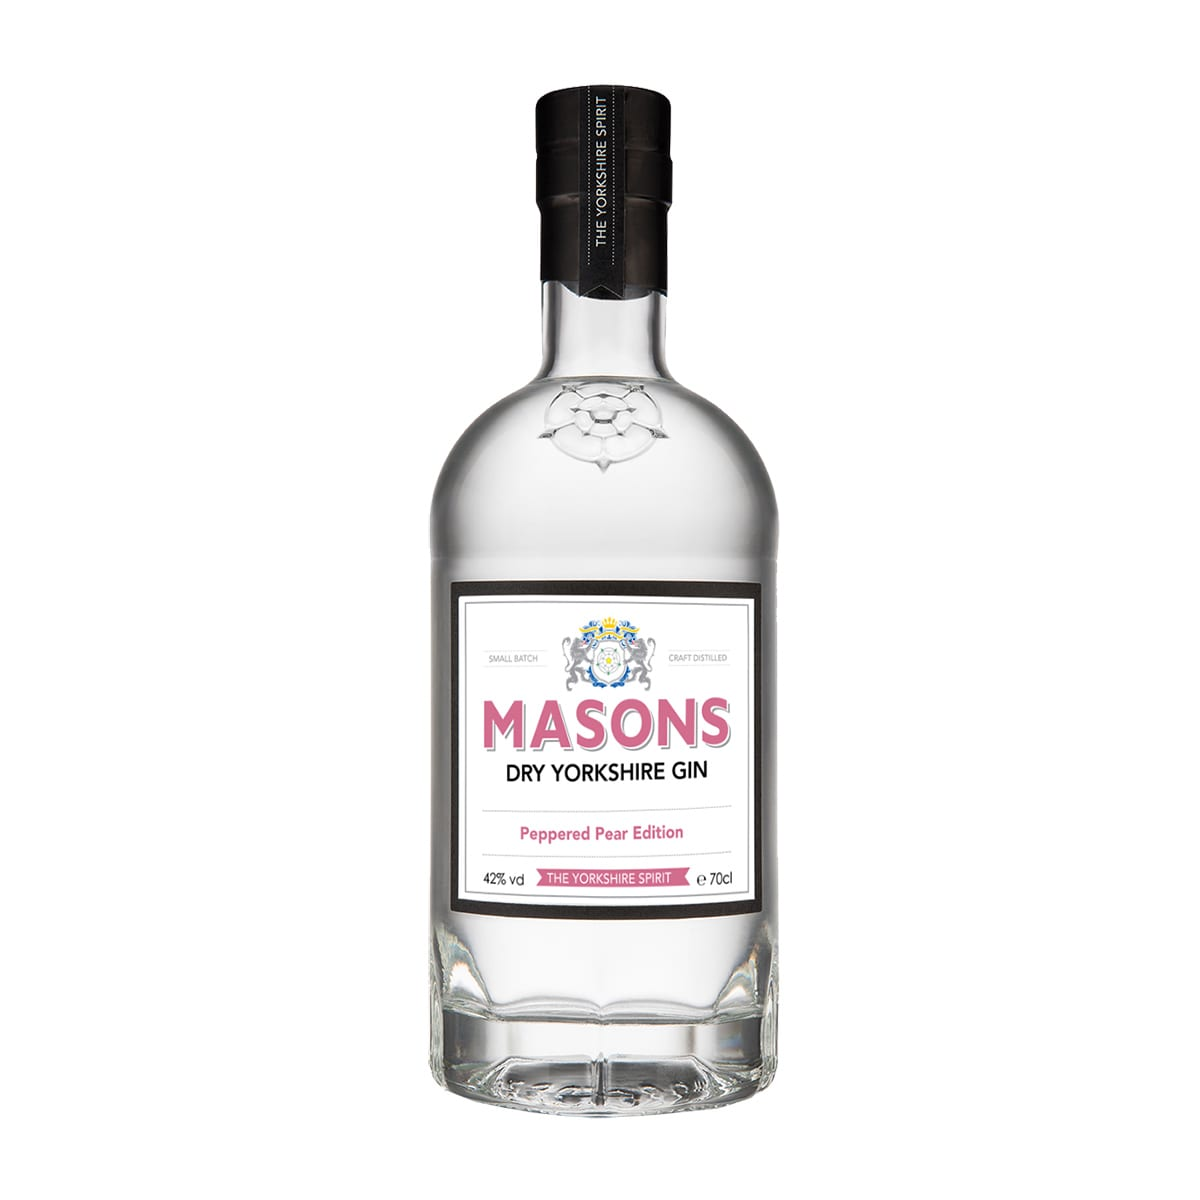 Masons Dry Yorkshire Gin – Peppered Pear Edition